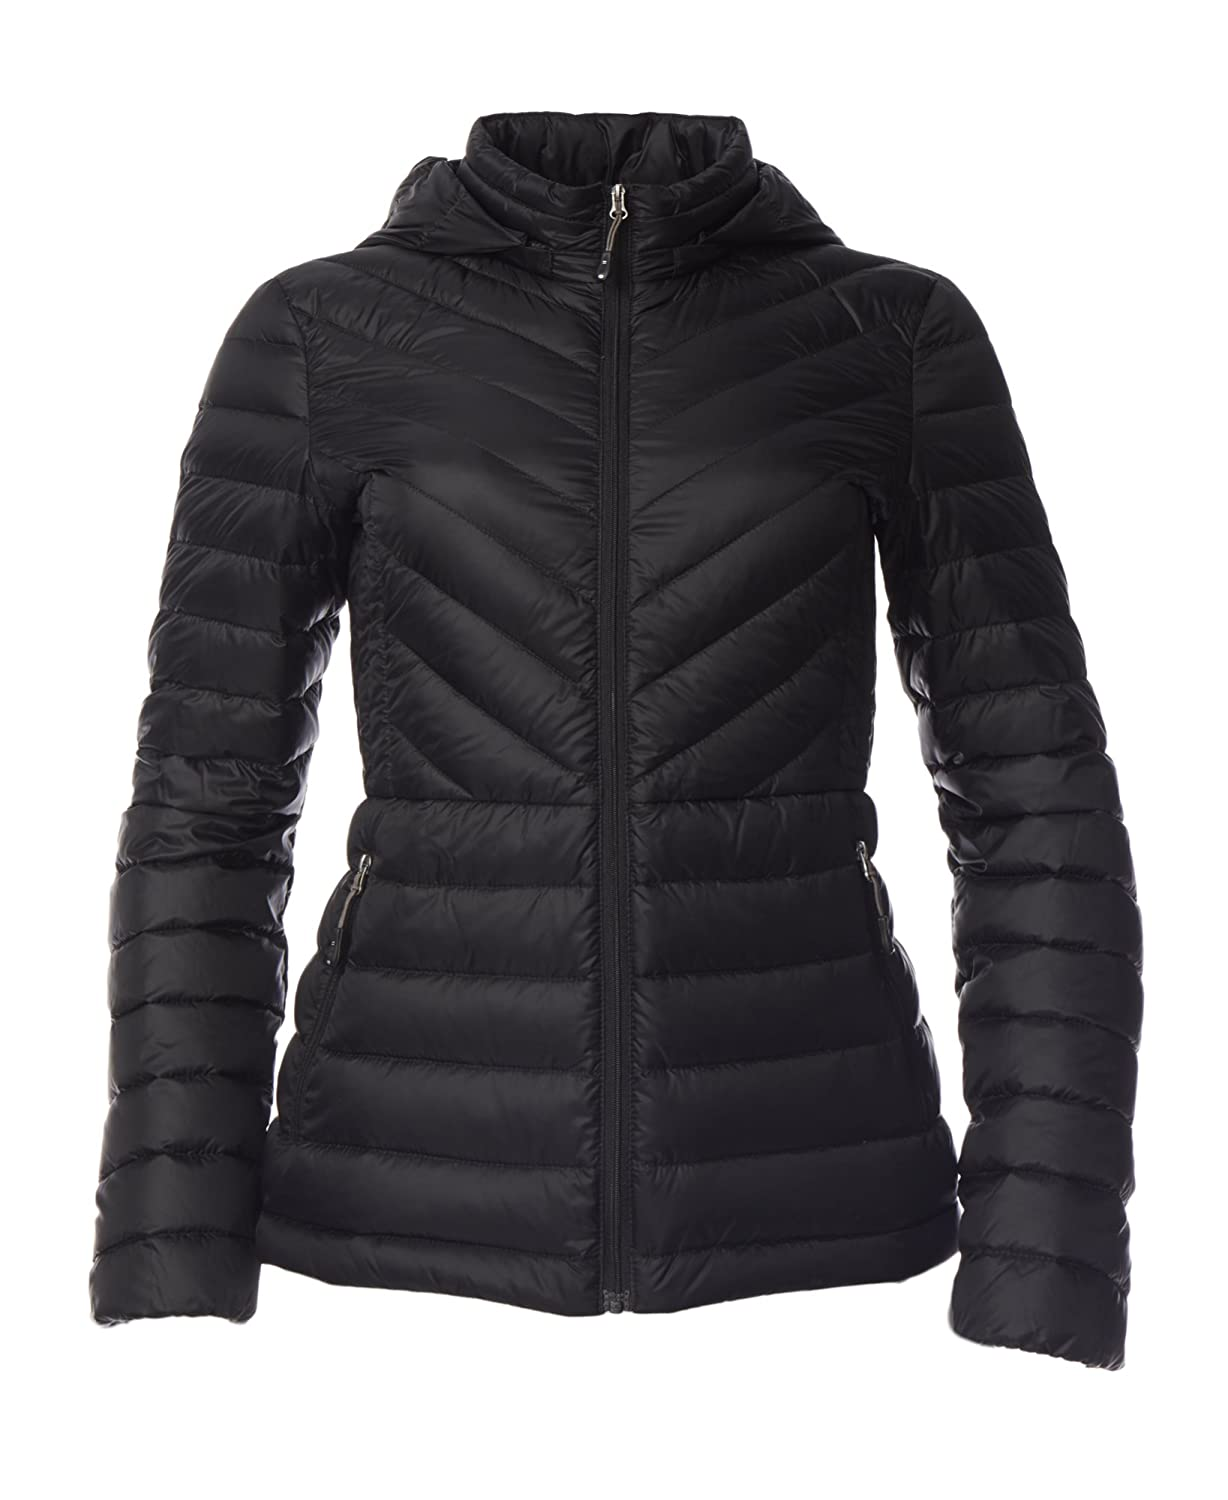 32 Degrees Women's PLUS SIZE Packable Down Jacket